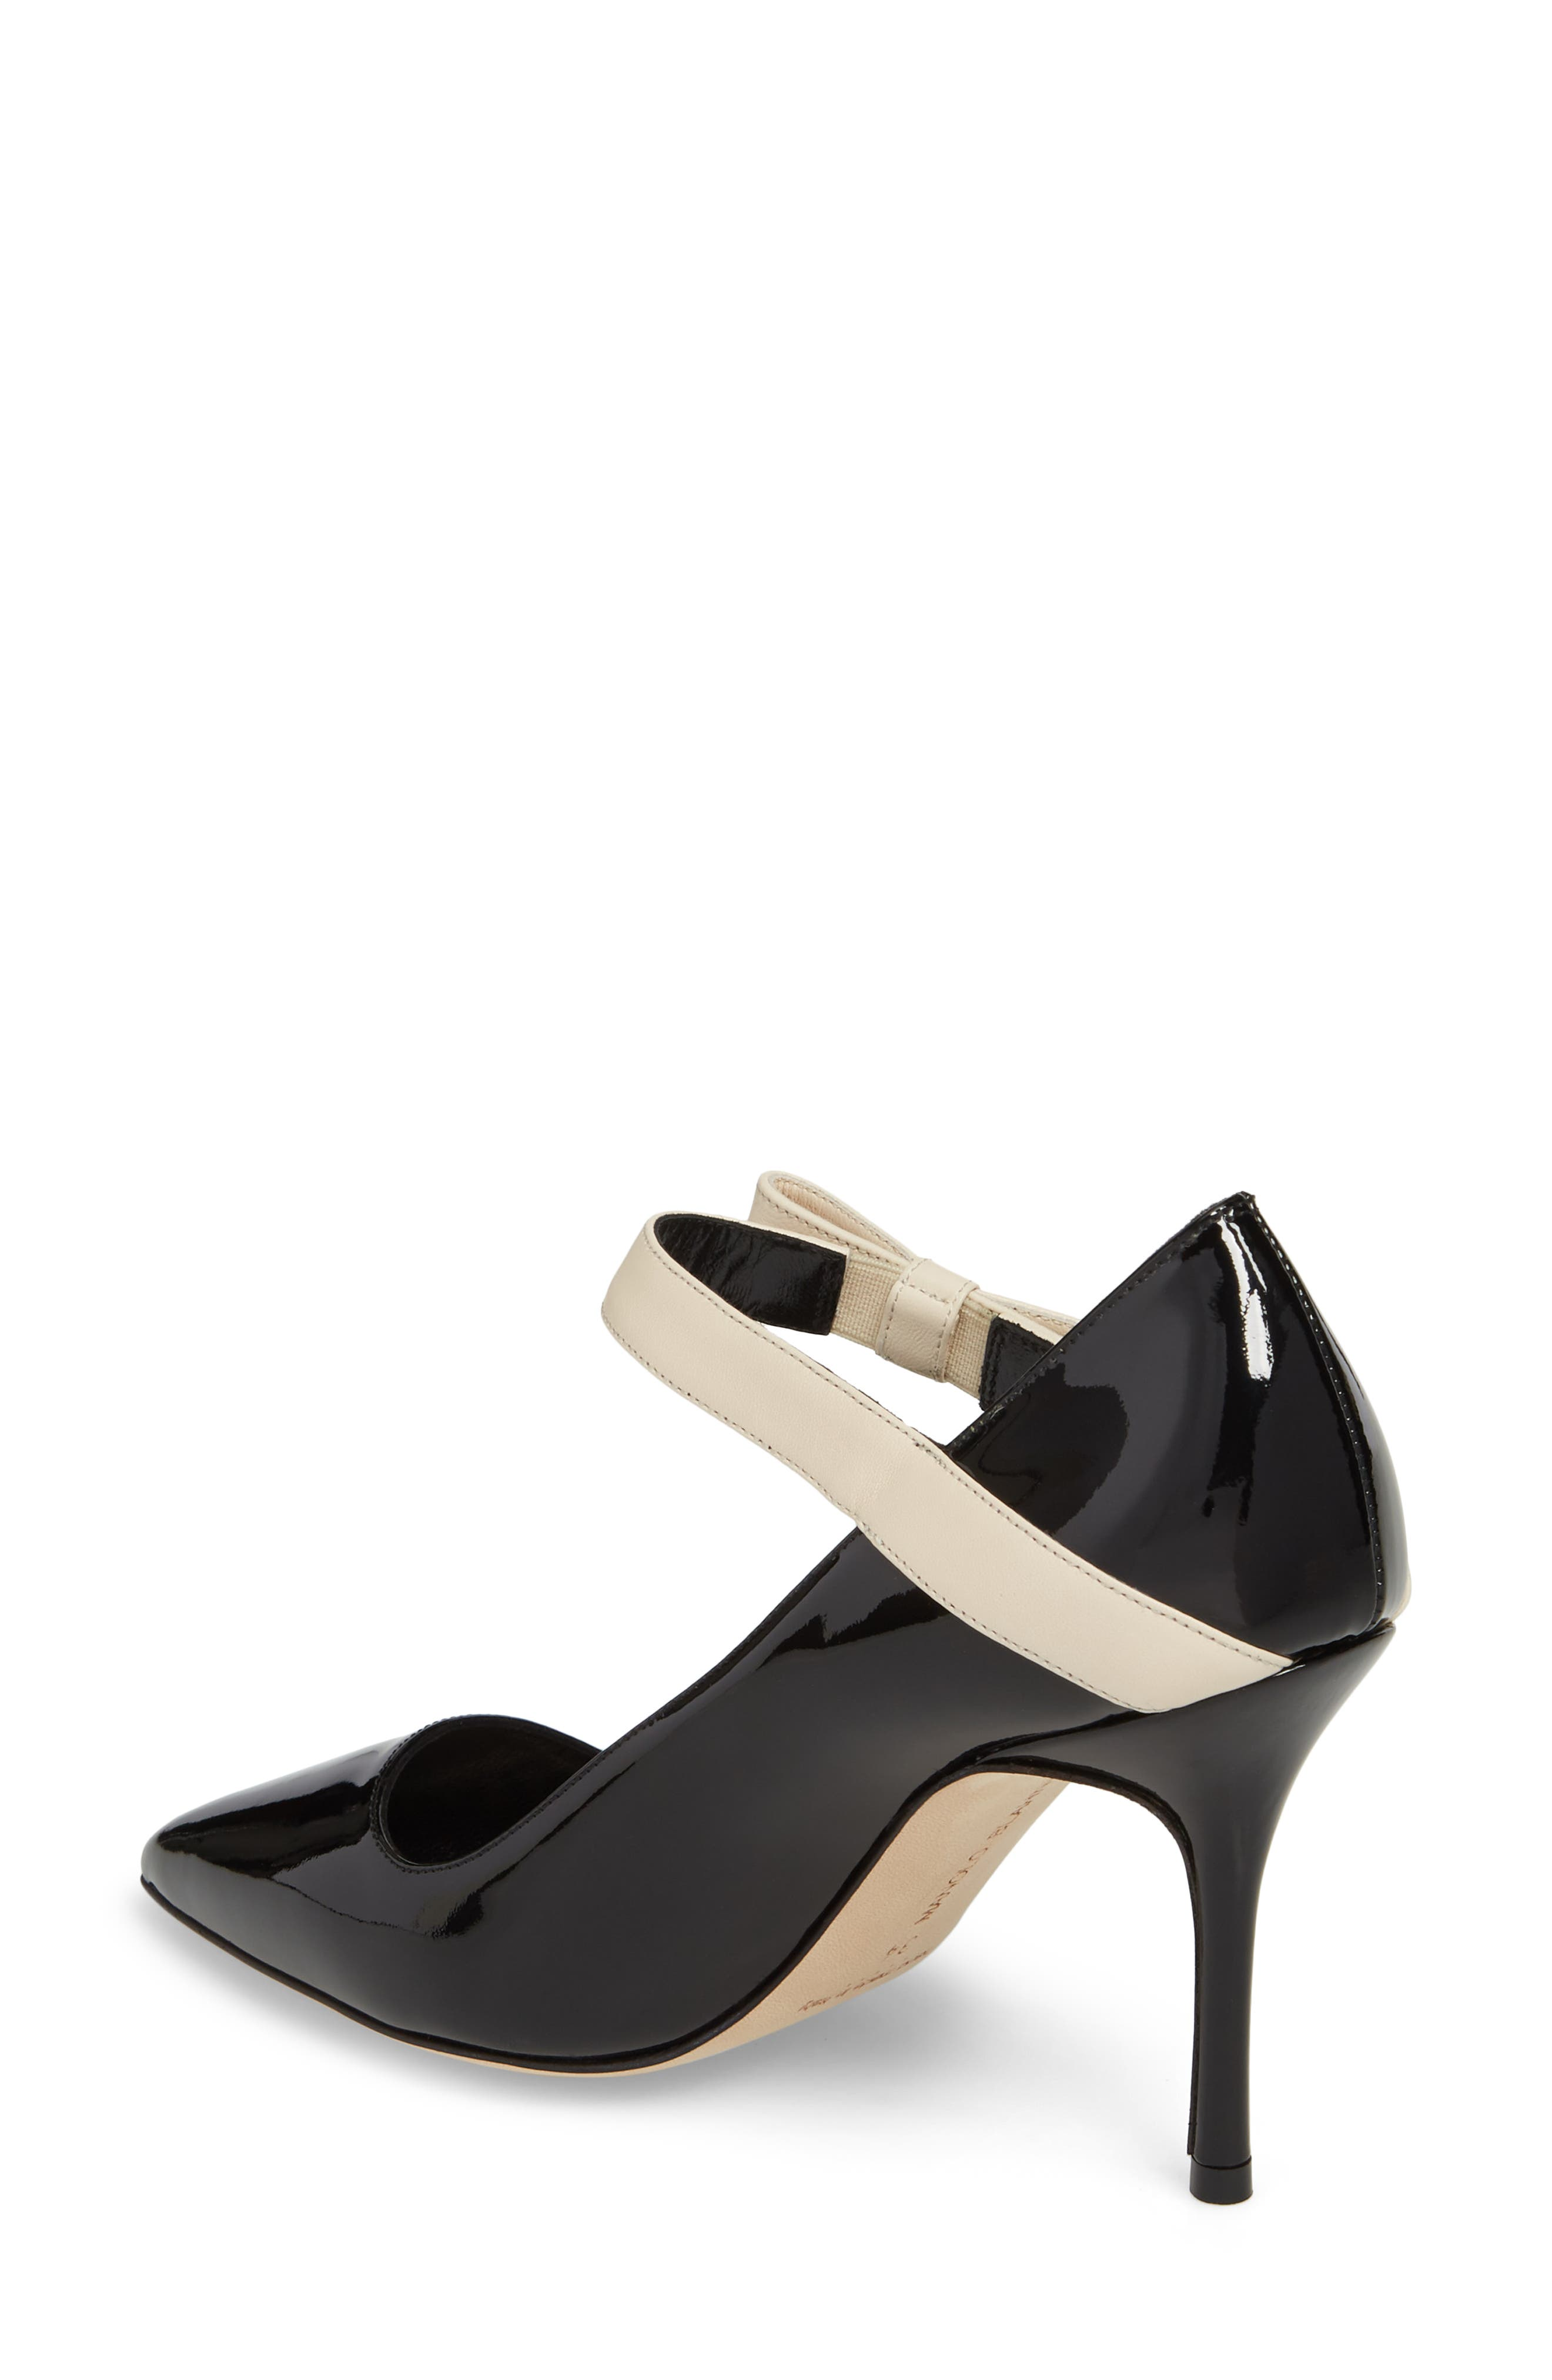 Immaculada Bow Pointy Toe Pump,                             Alternate thumbnail 2, color,                             Black/ White